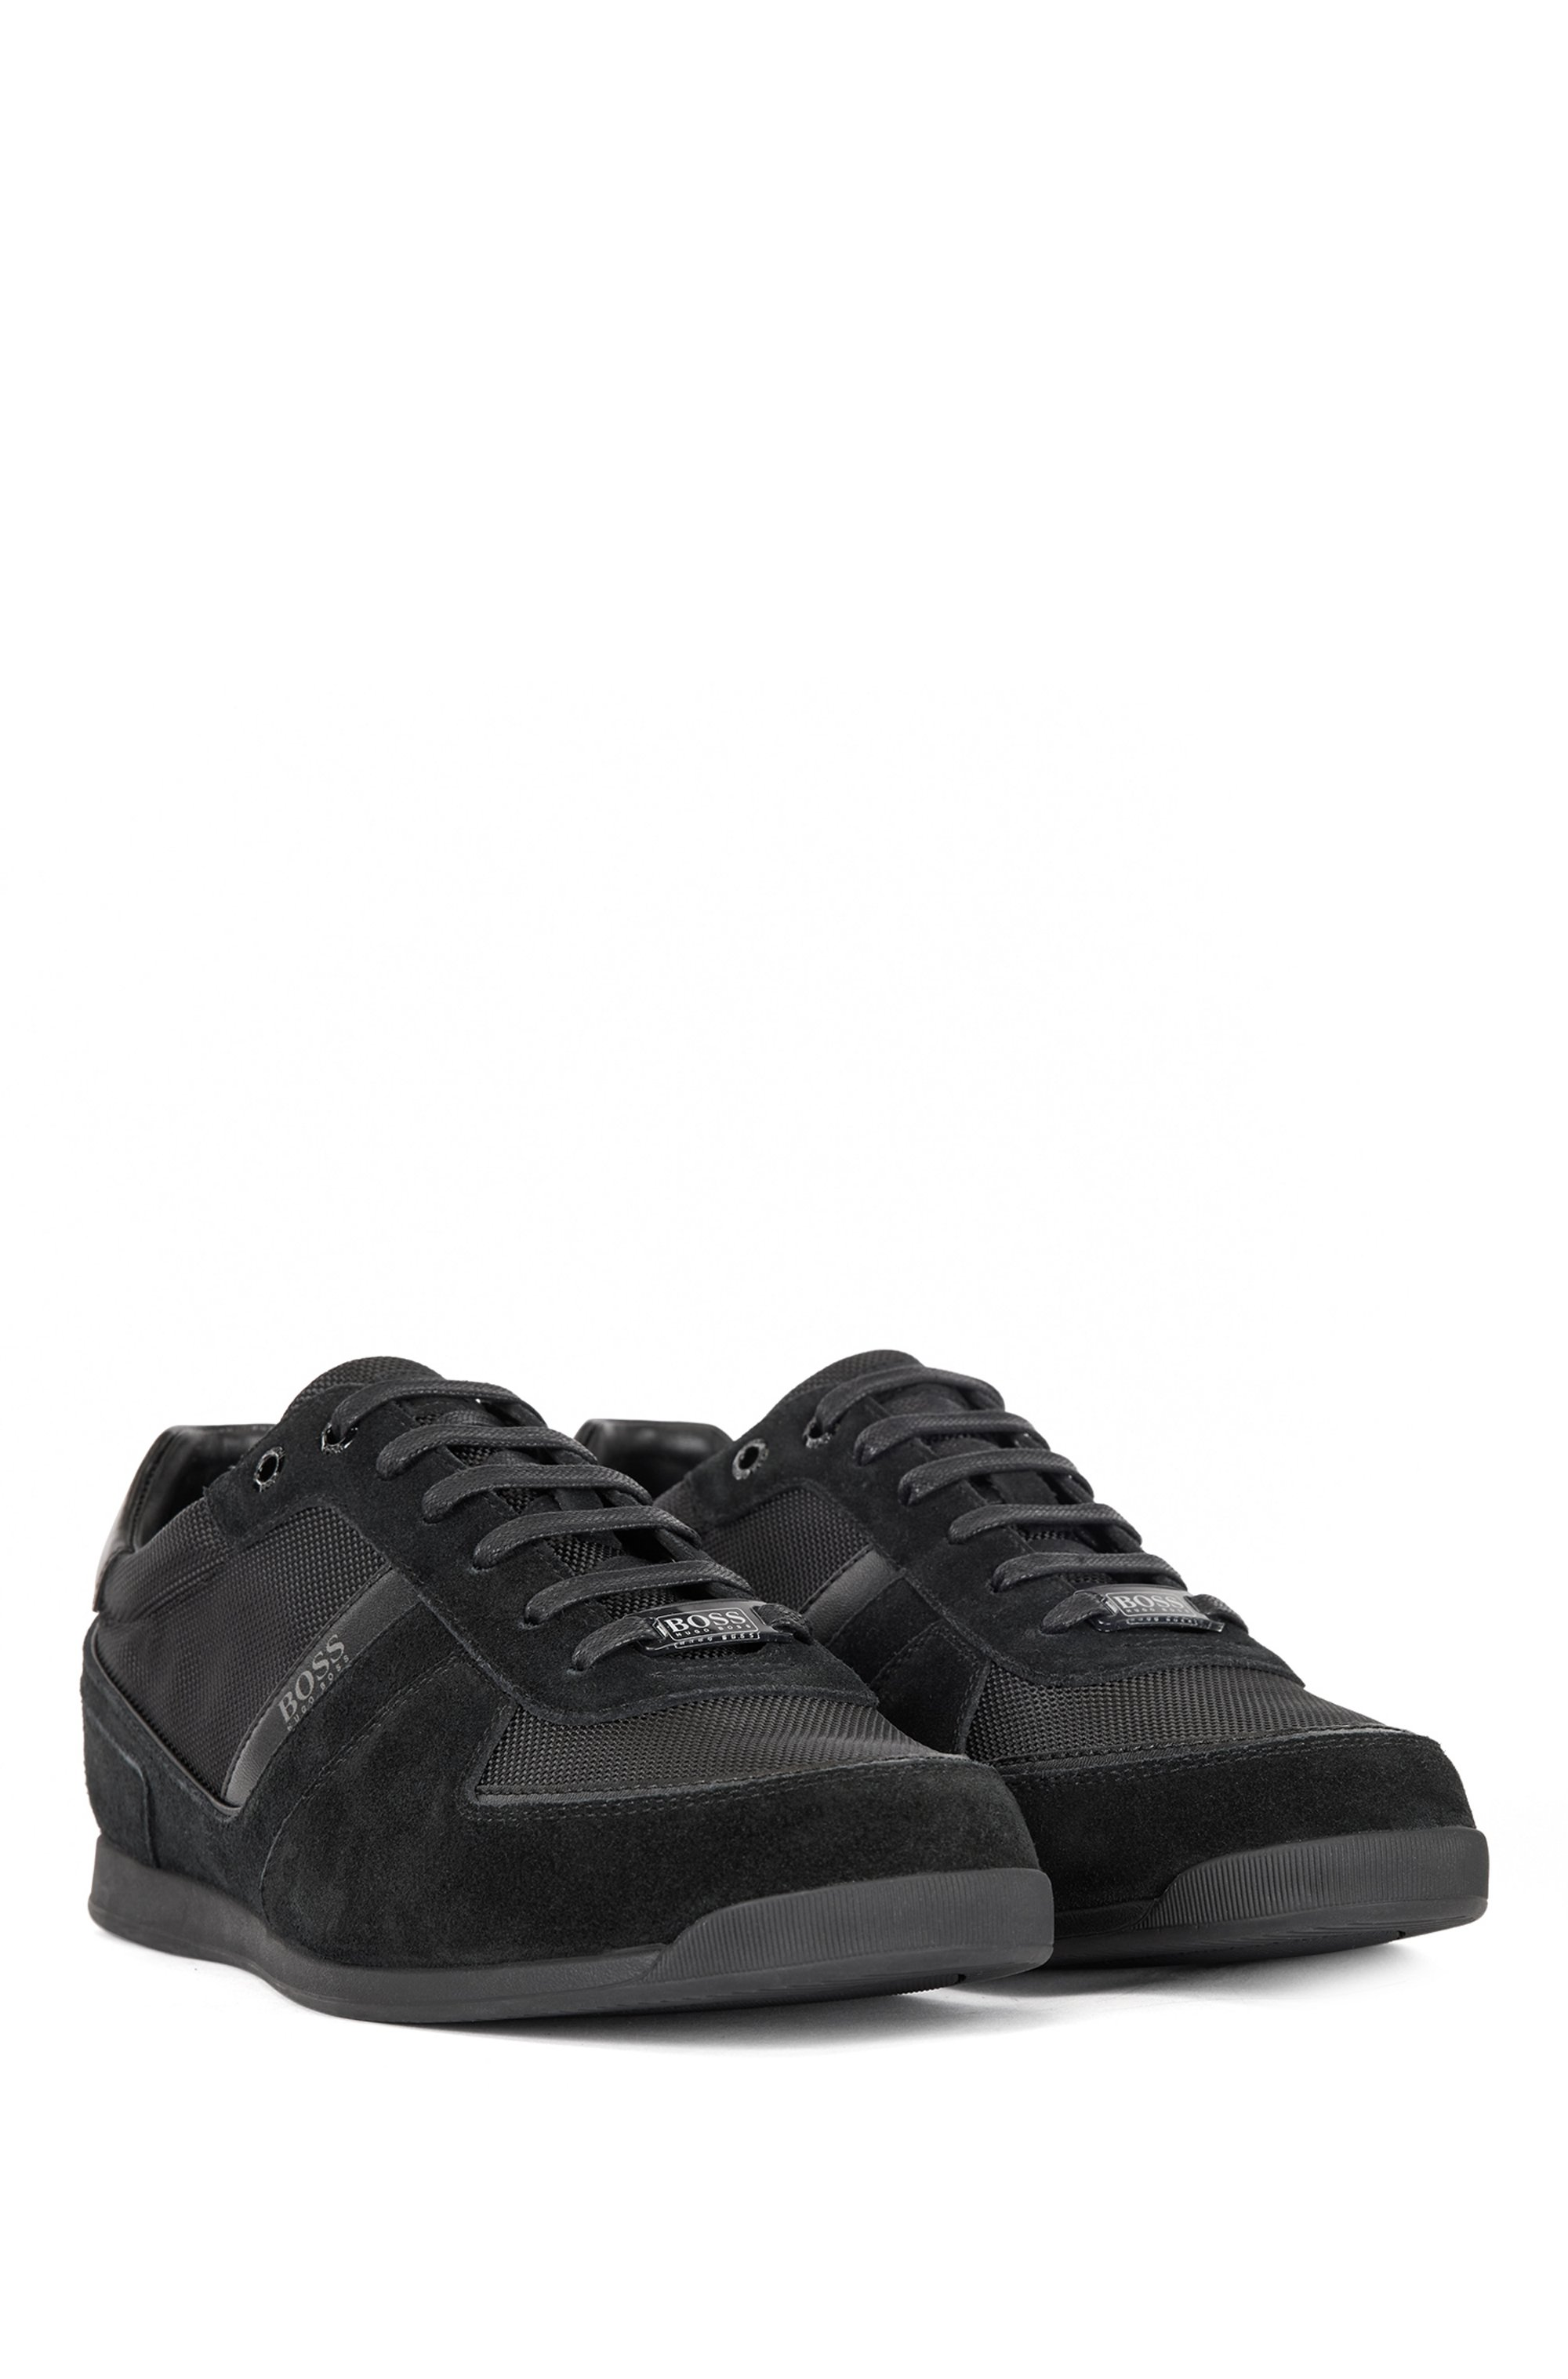 Low-top trainers in leather, suede and technical fabric